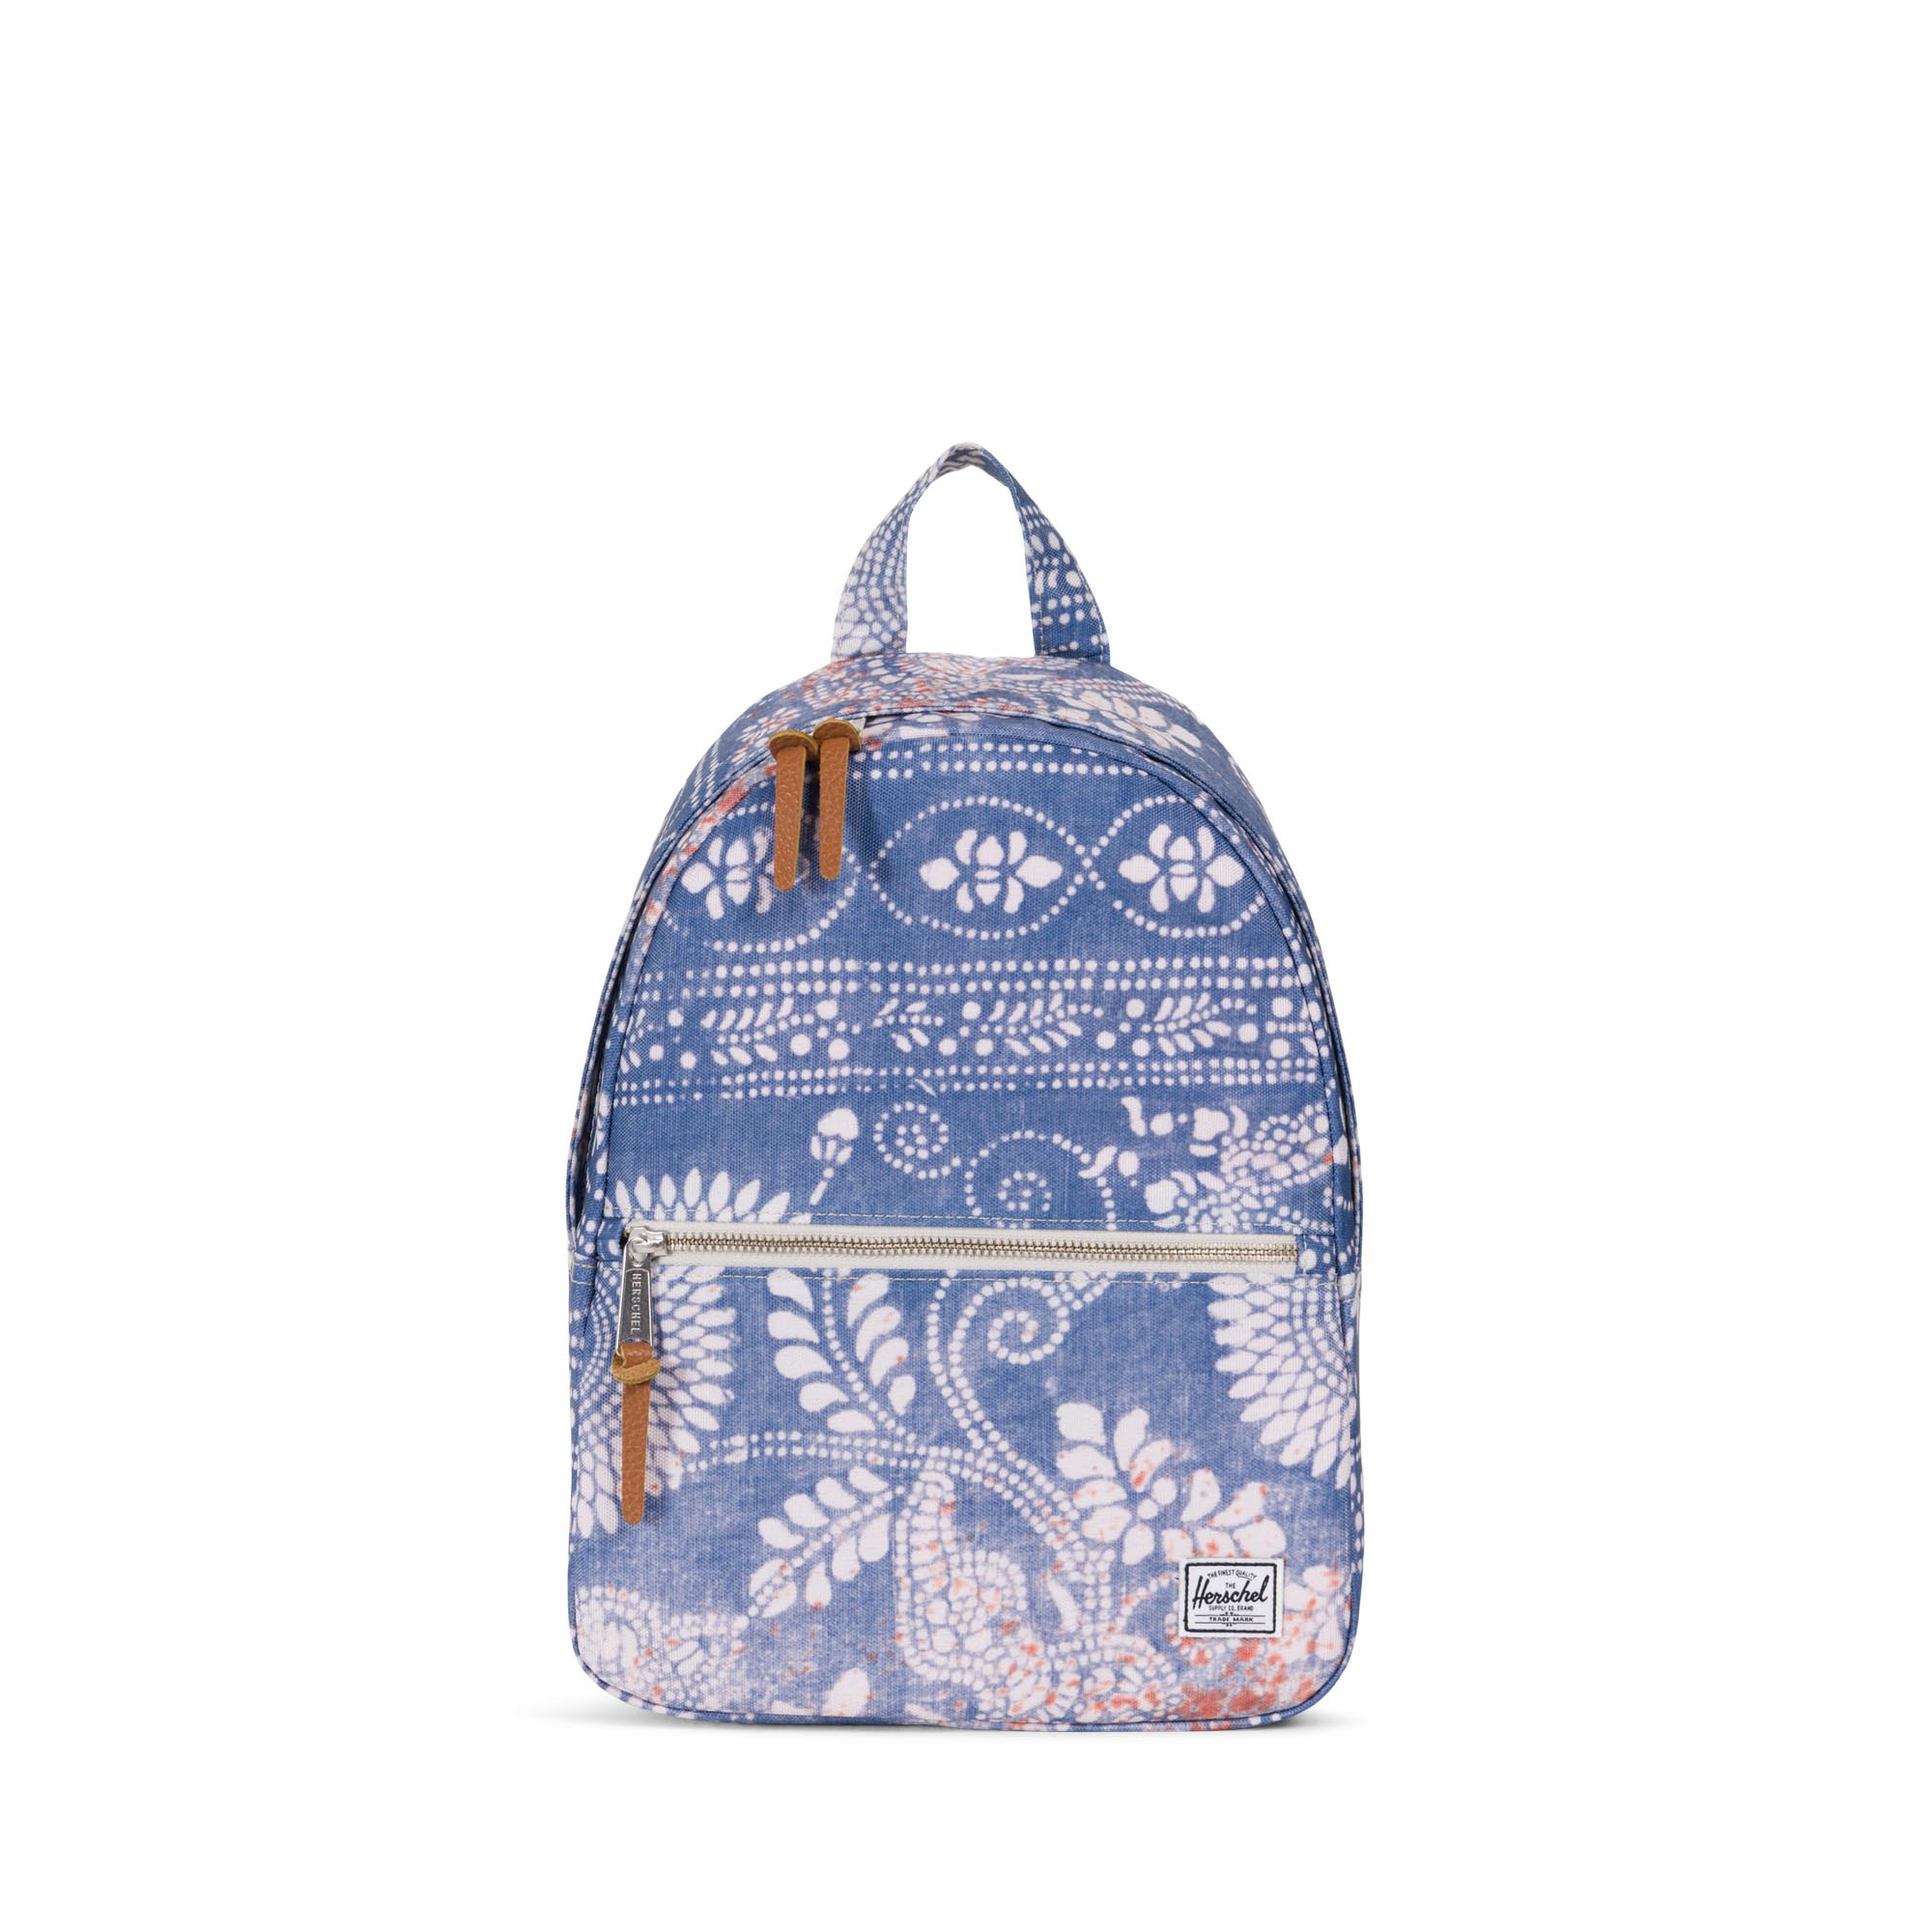 Town Backpack XS   Herschel Supply Company a2f50c4129